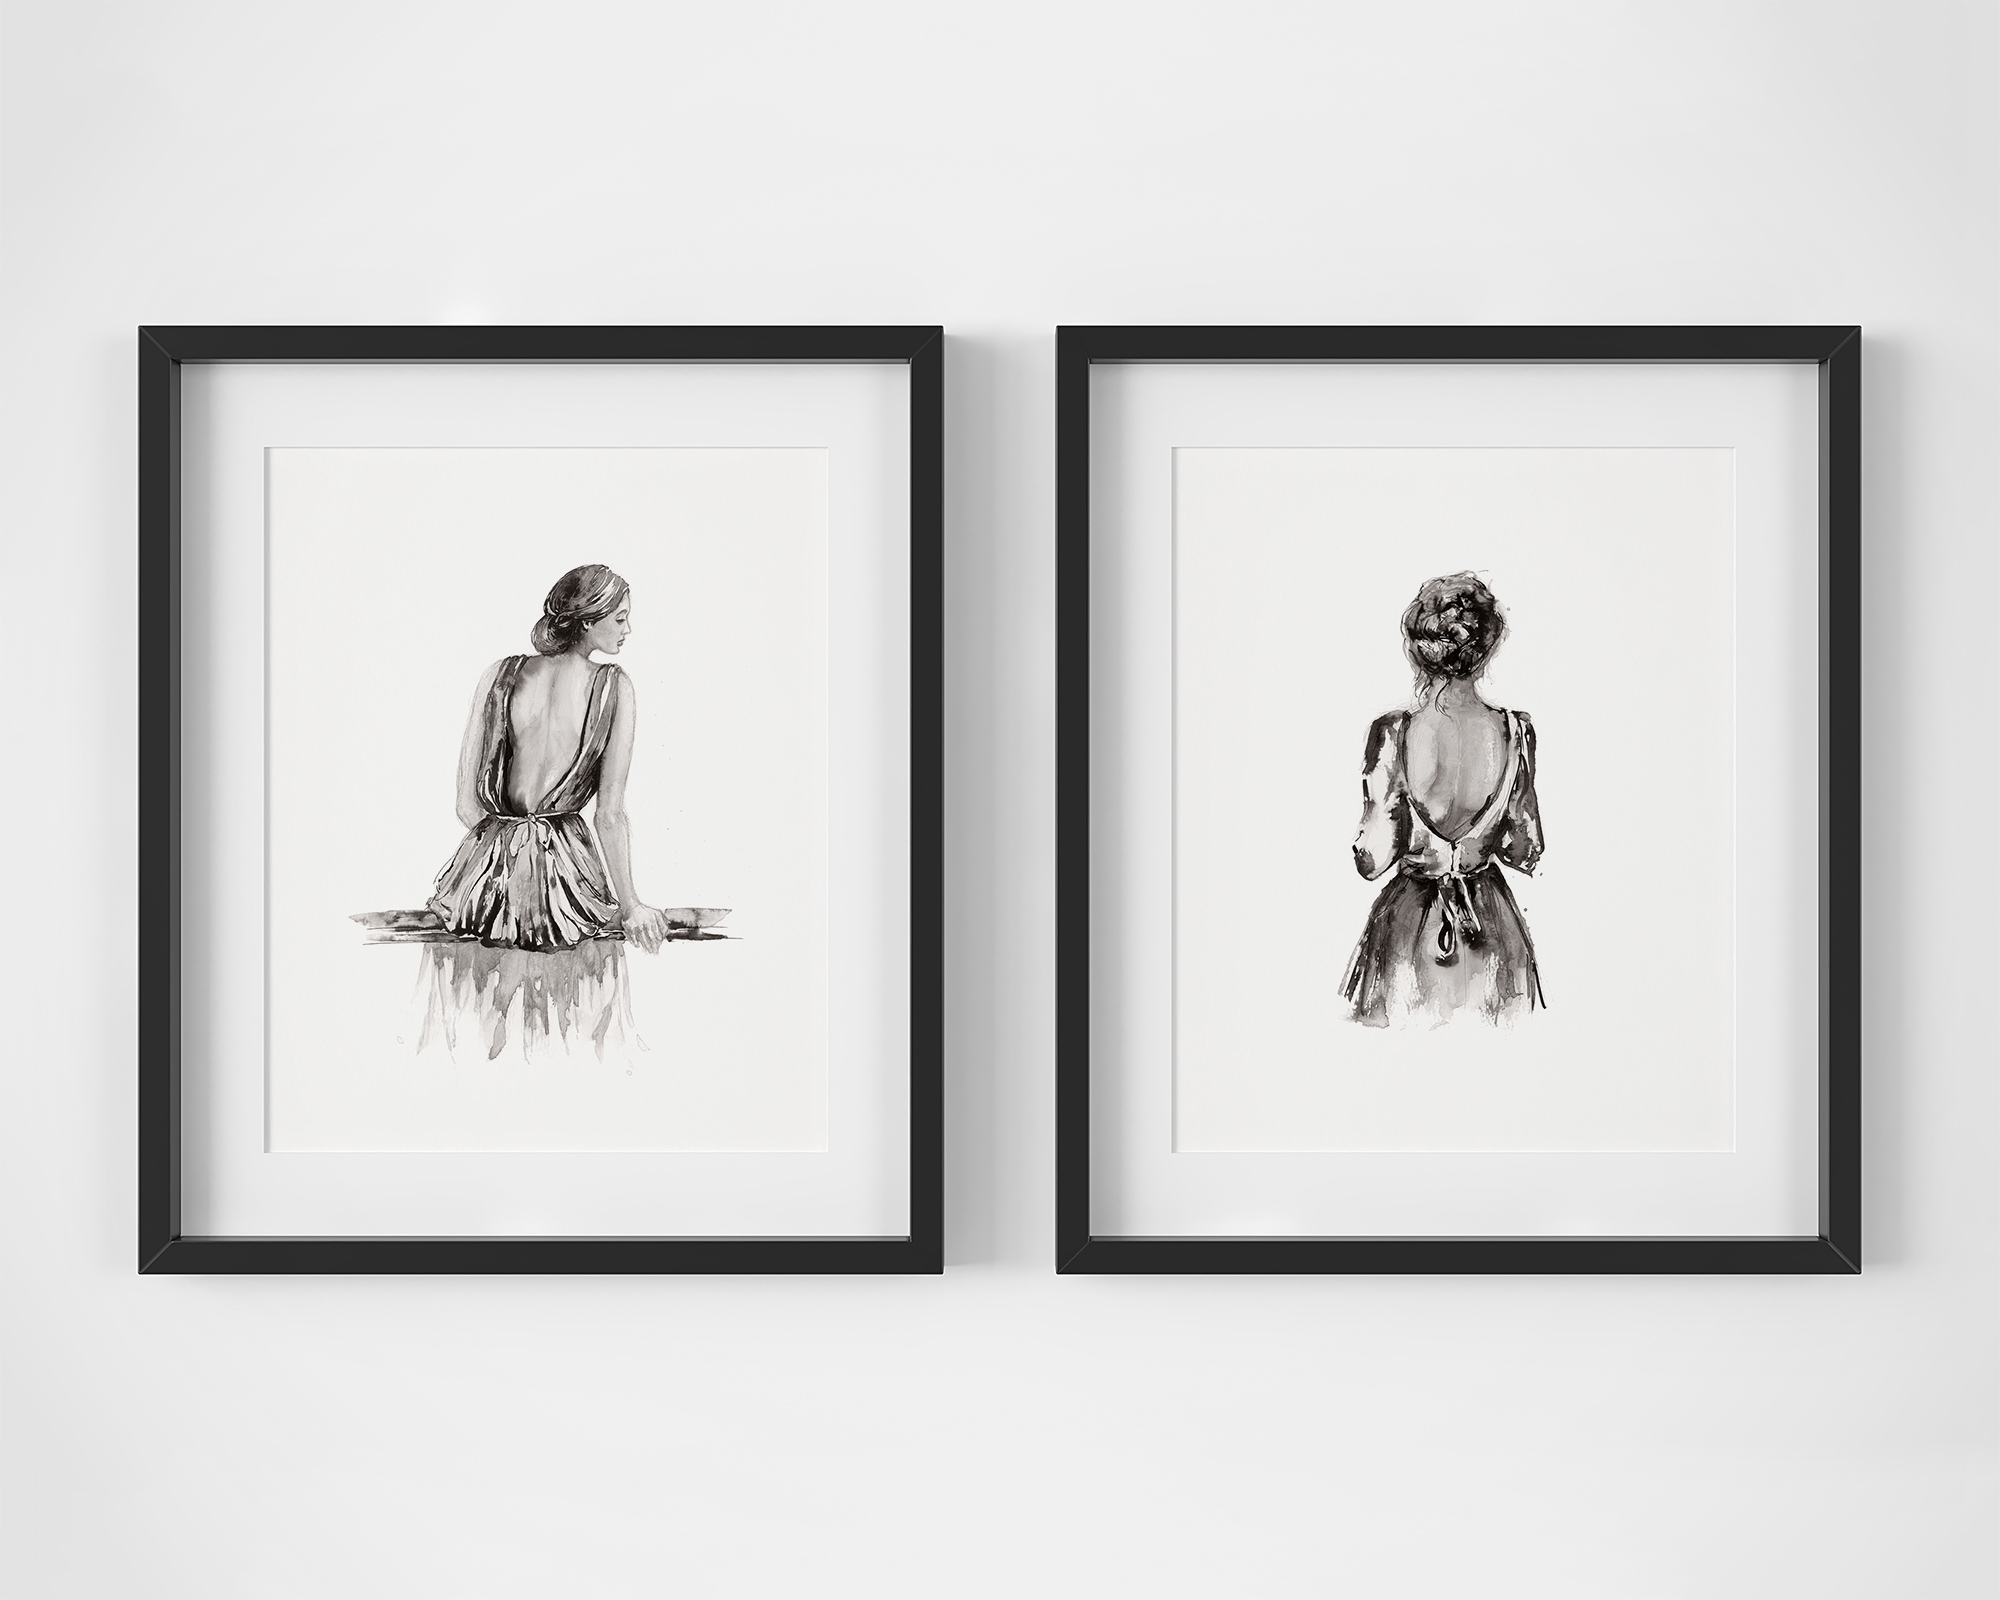 'Morning Light' and 'Breath'.  Fine Art Prints by Artist, Dana Trijbetz.  Original Ink Paintings made as Giclée Prints on 100% Cotton Paper.  Image 4 of 4.jpg